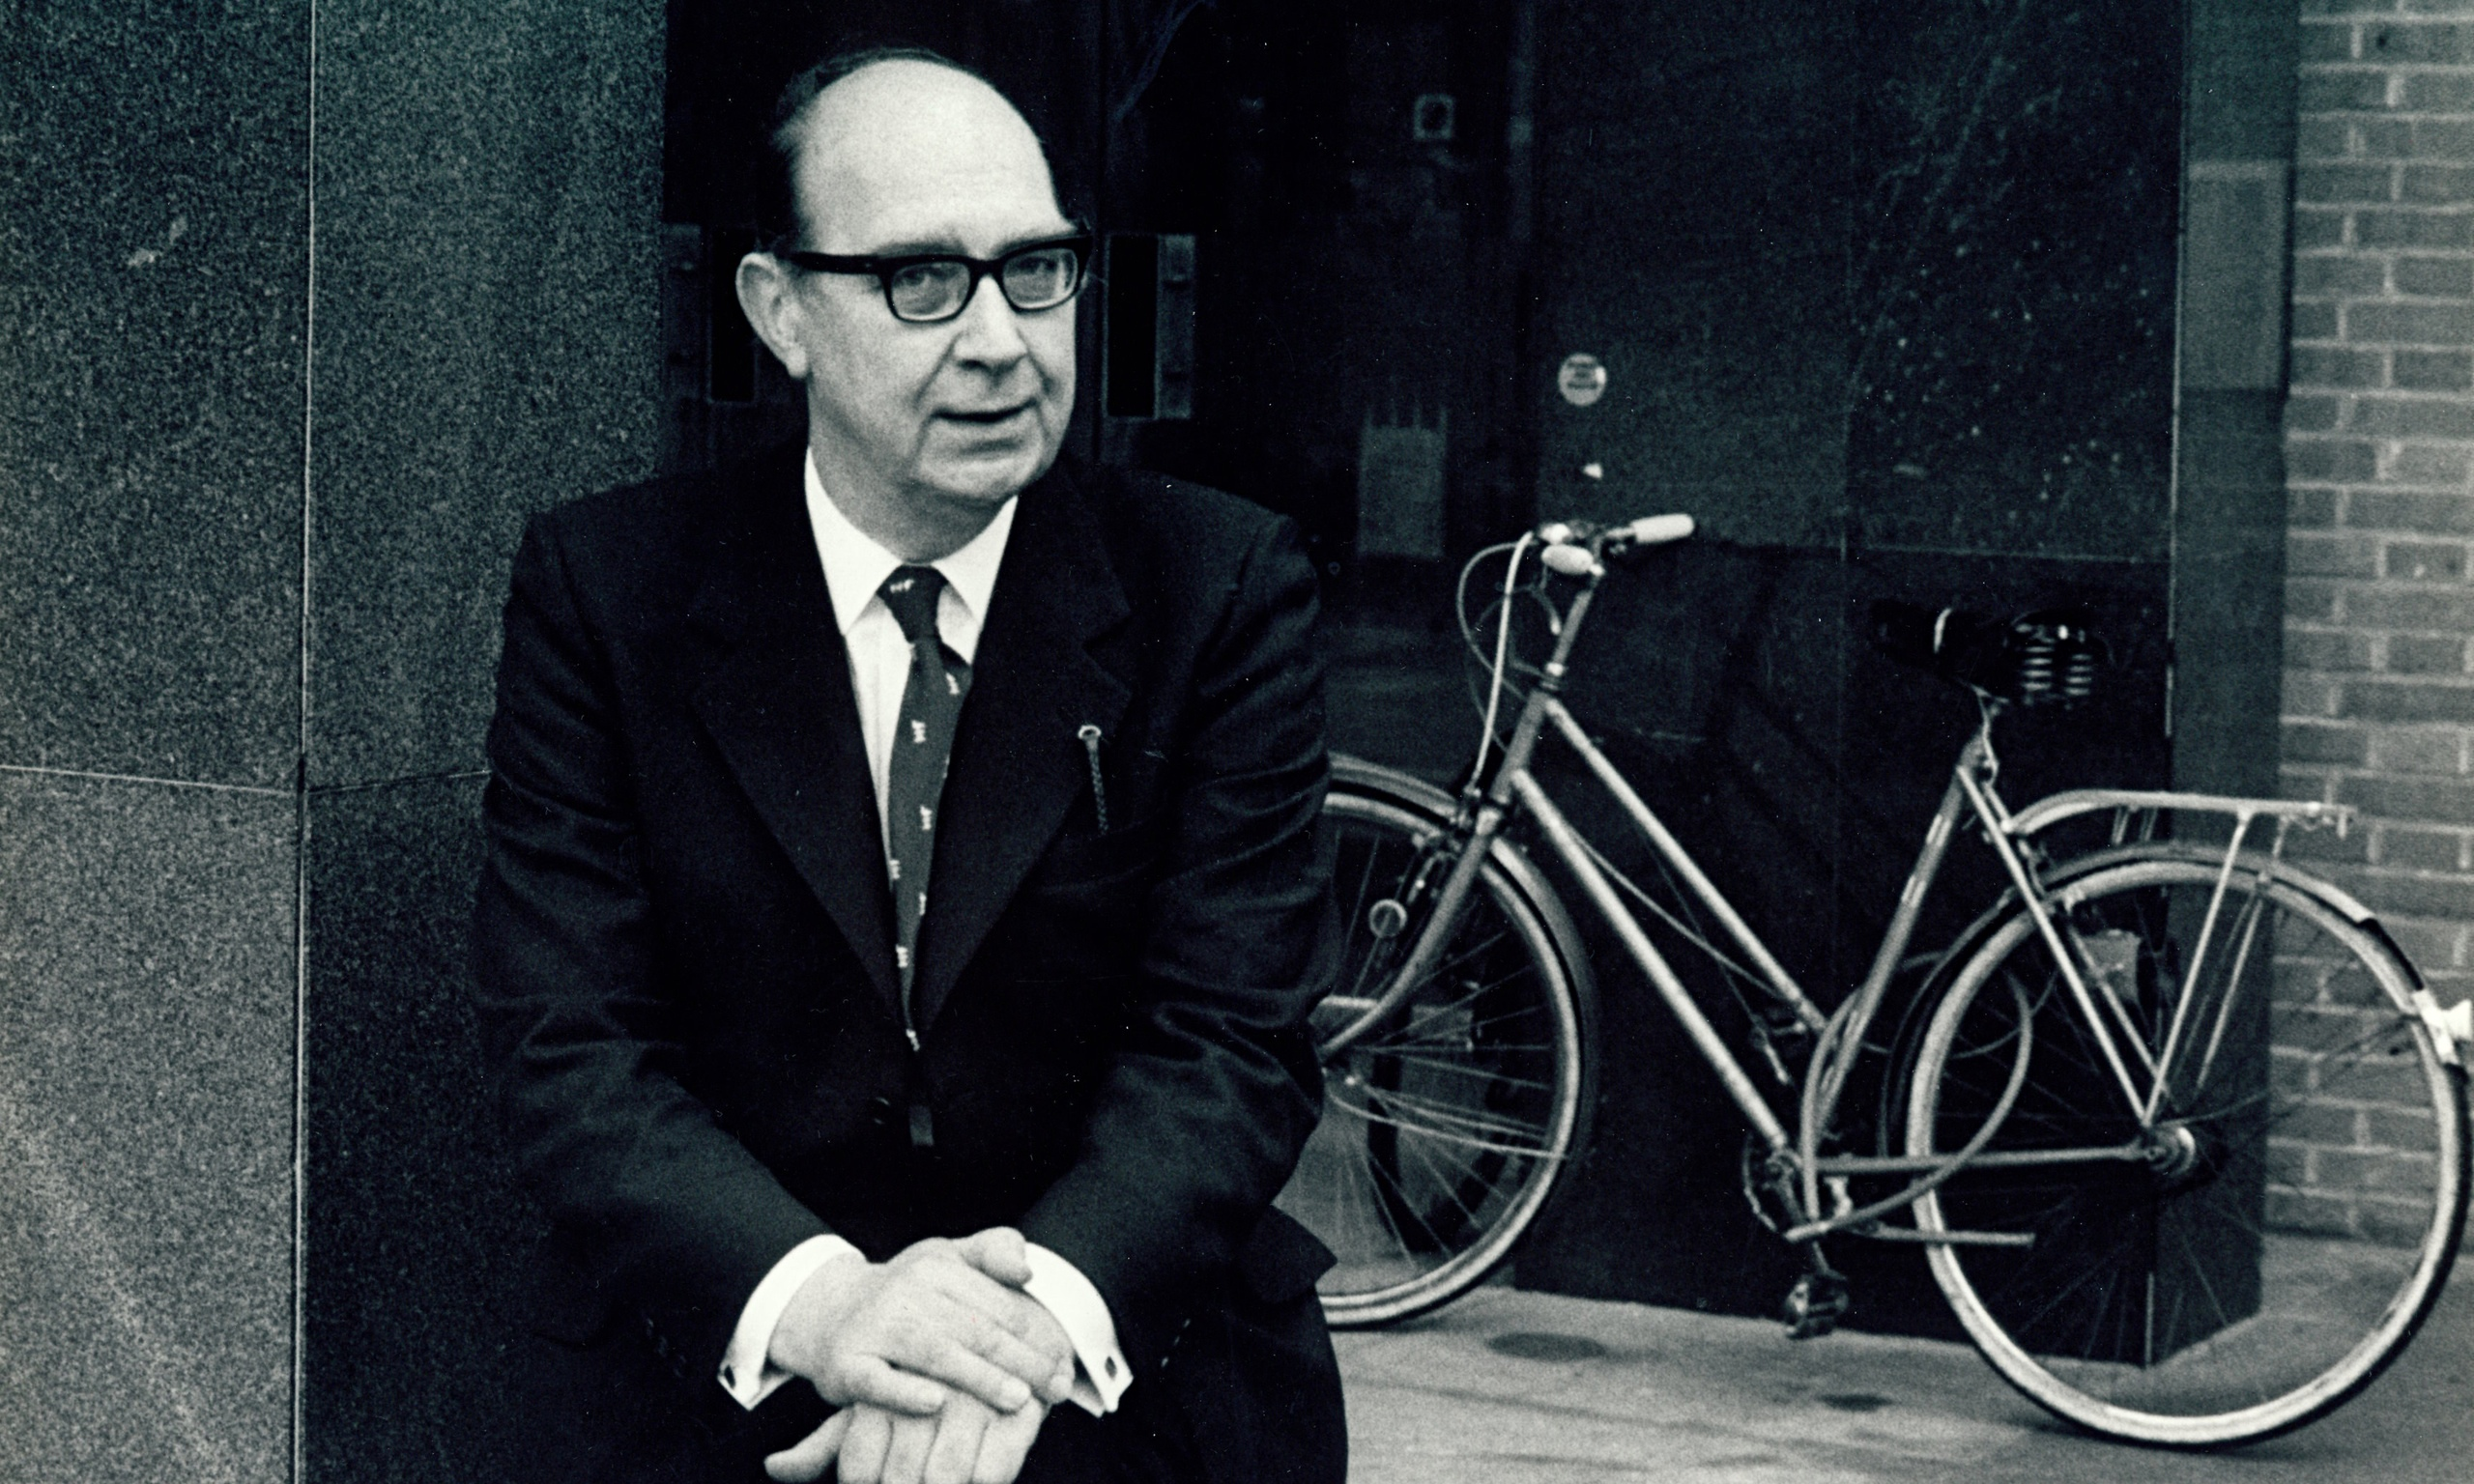 philip larkin Philip arthur larkin ch cbe frsl (9 august 1922 – 2 december 1985) was an english poet, novelist and librarian his first book of poetry, the north ship, was published in 1945, followed by two novels, jill (1946) and a girl in winter (1947), and he came to prominence in 1955 with the publication of his second collection of poems, the less.